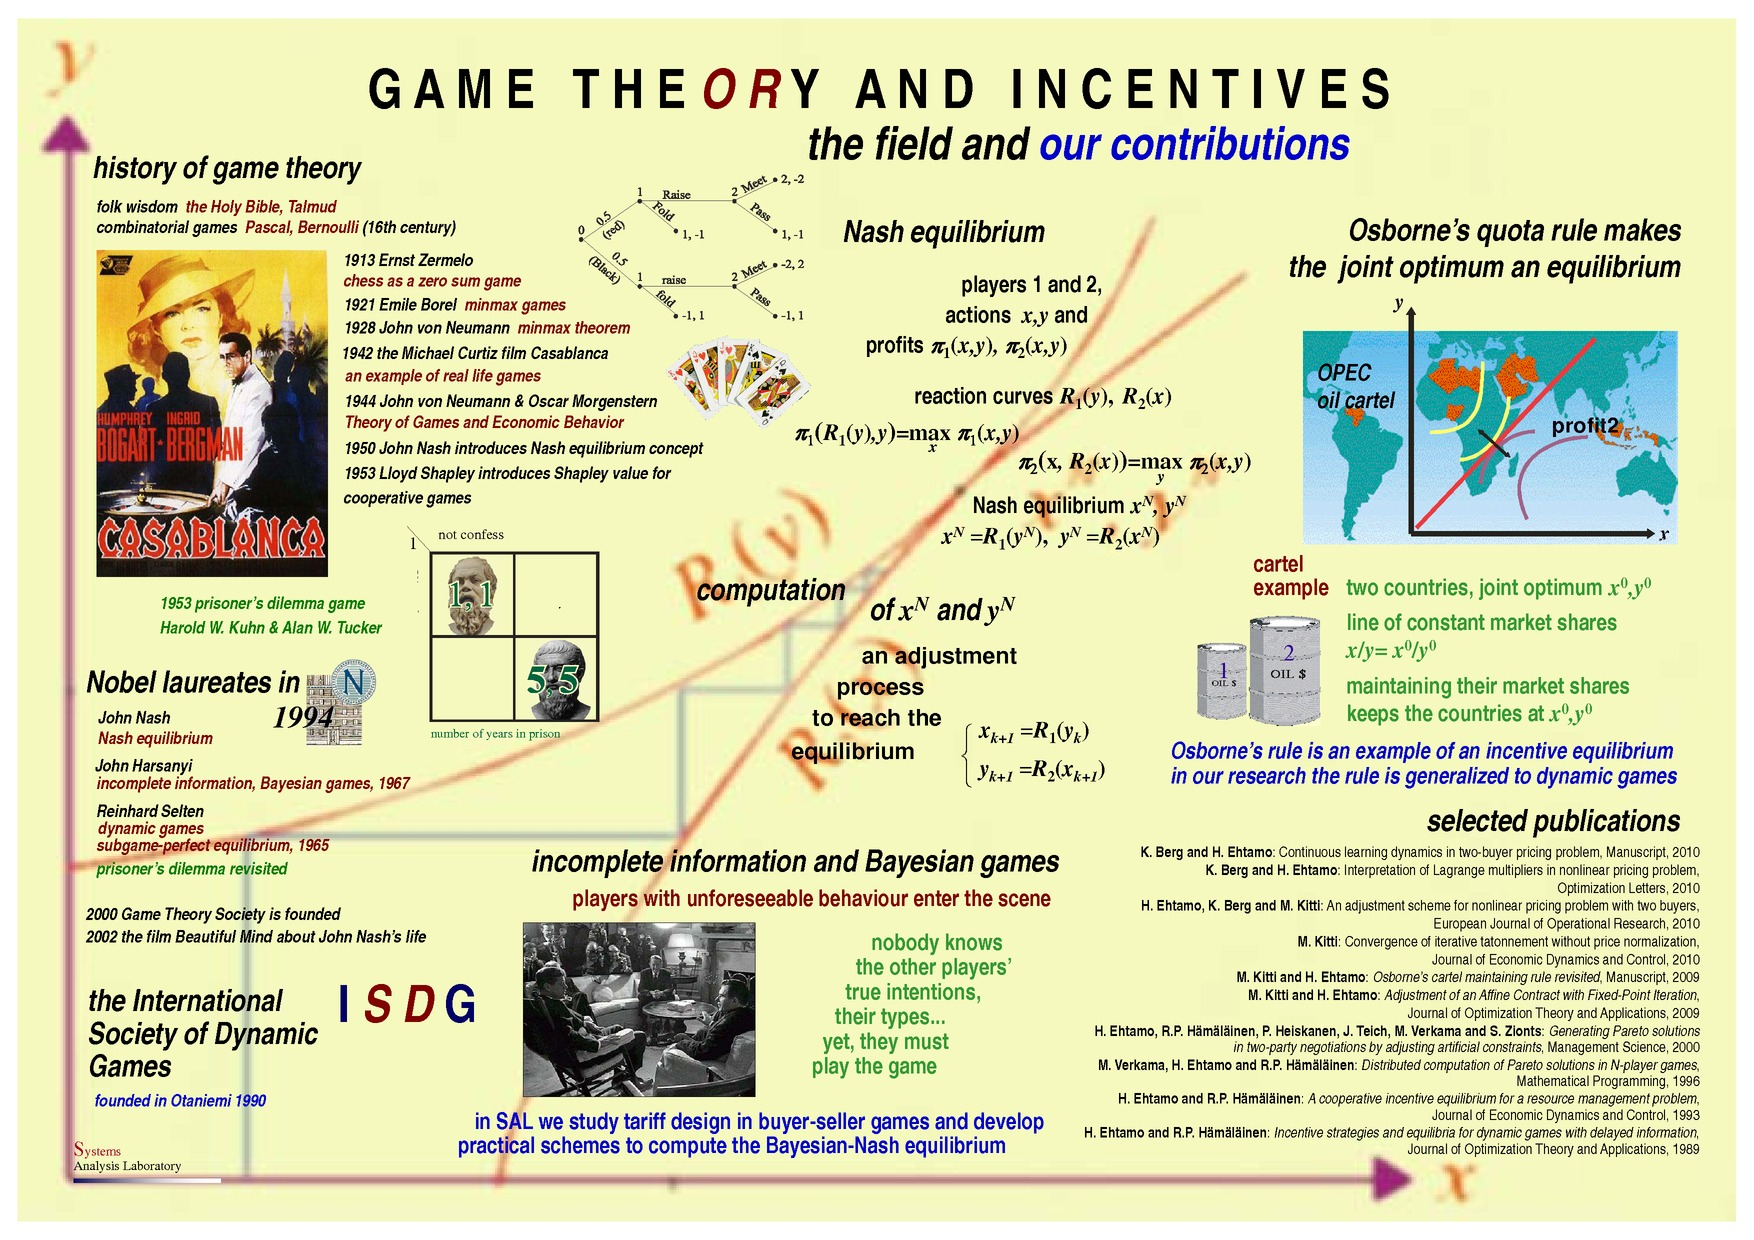 Thesis vs Theory - What's the difference?